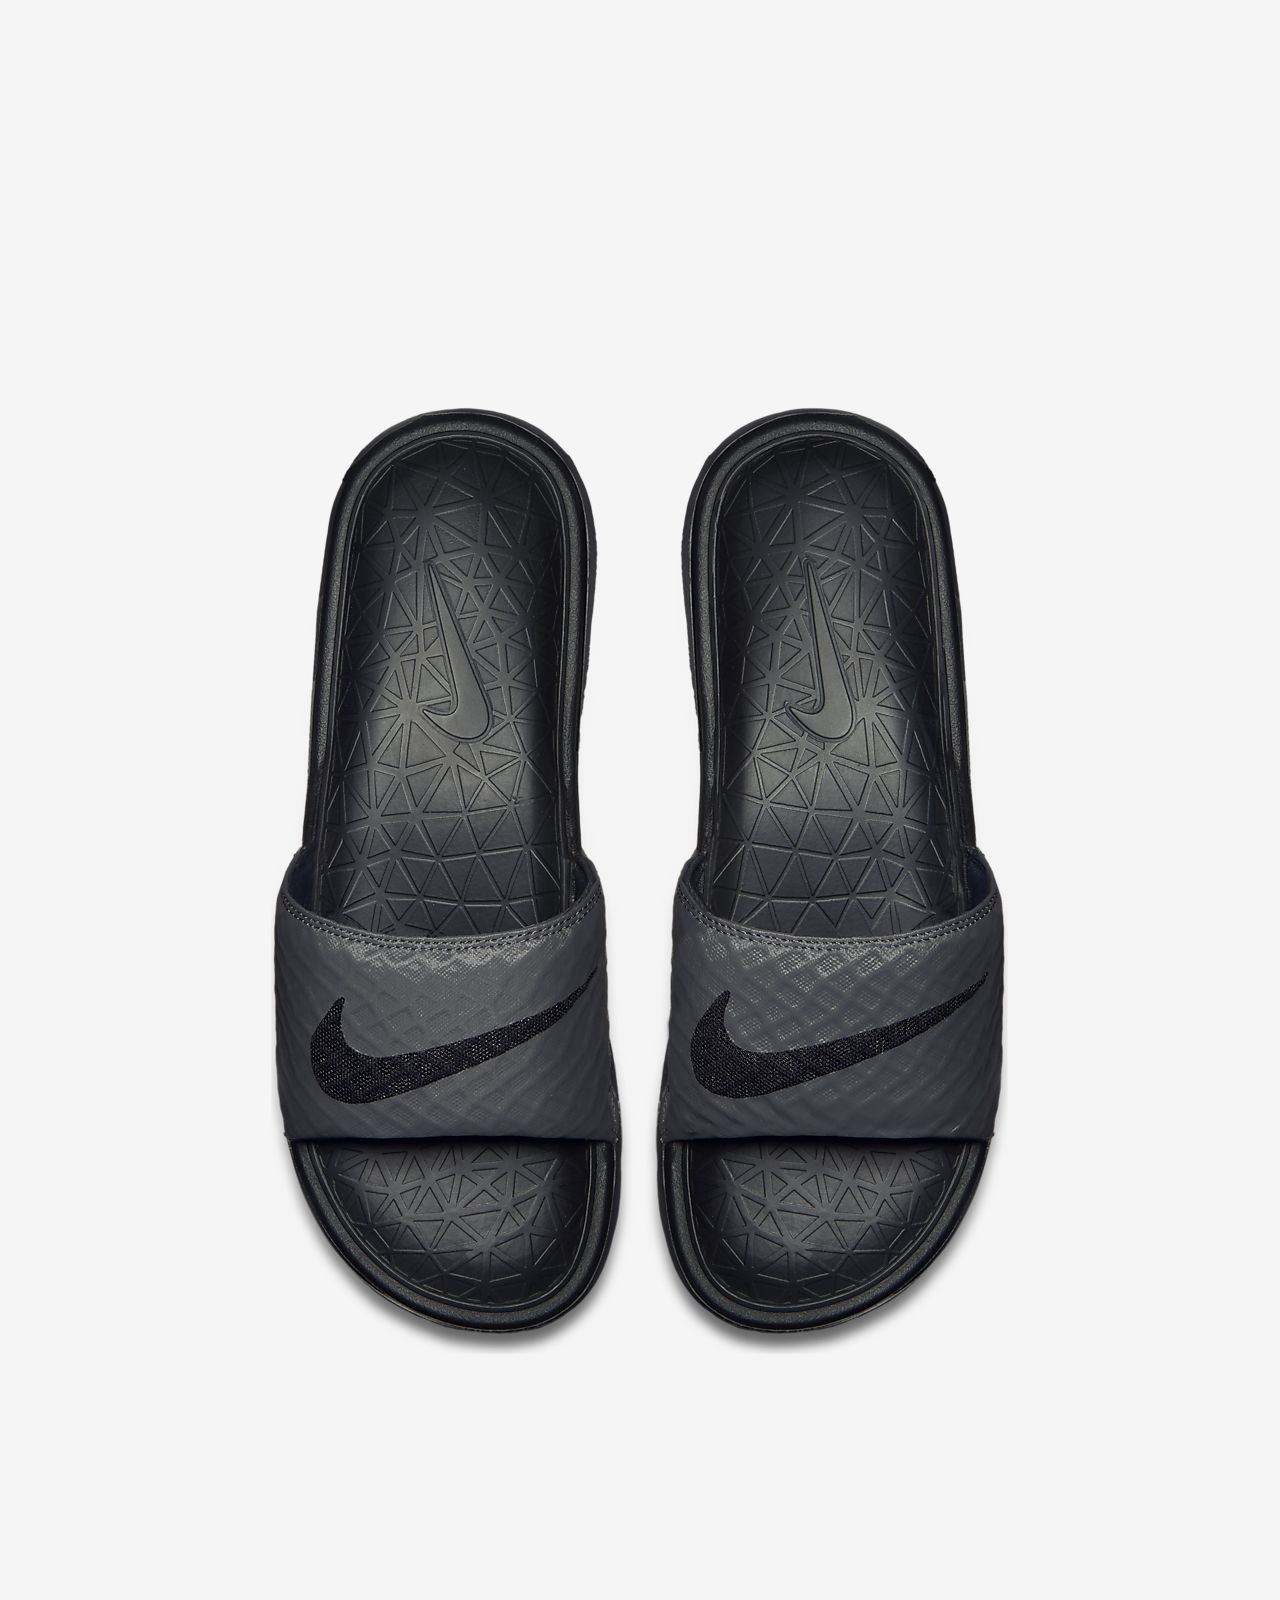 40c9bb257a45 Nike Benassi Solarsoft 2 Men s Slide. Nike.com GB